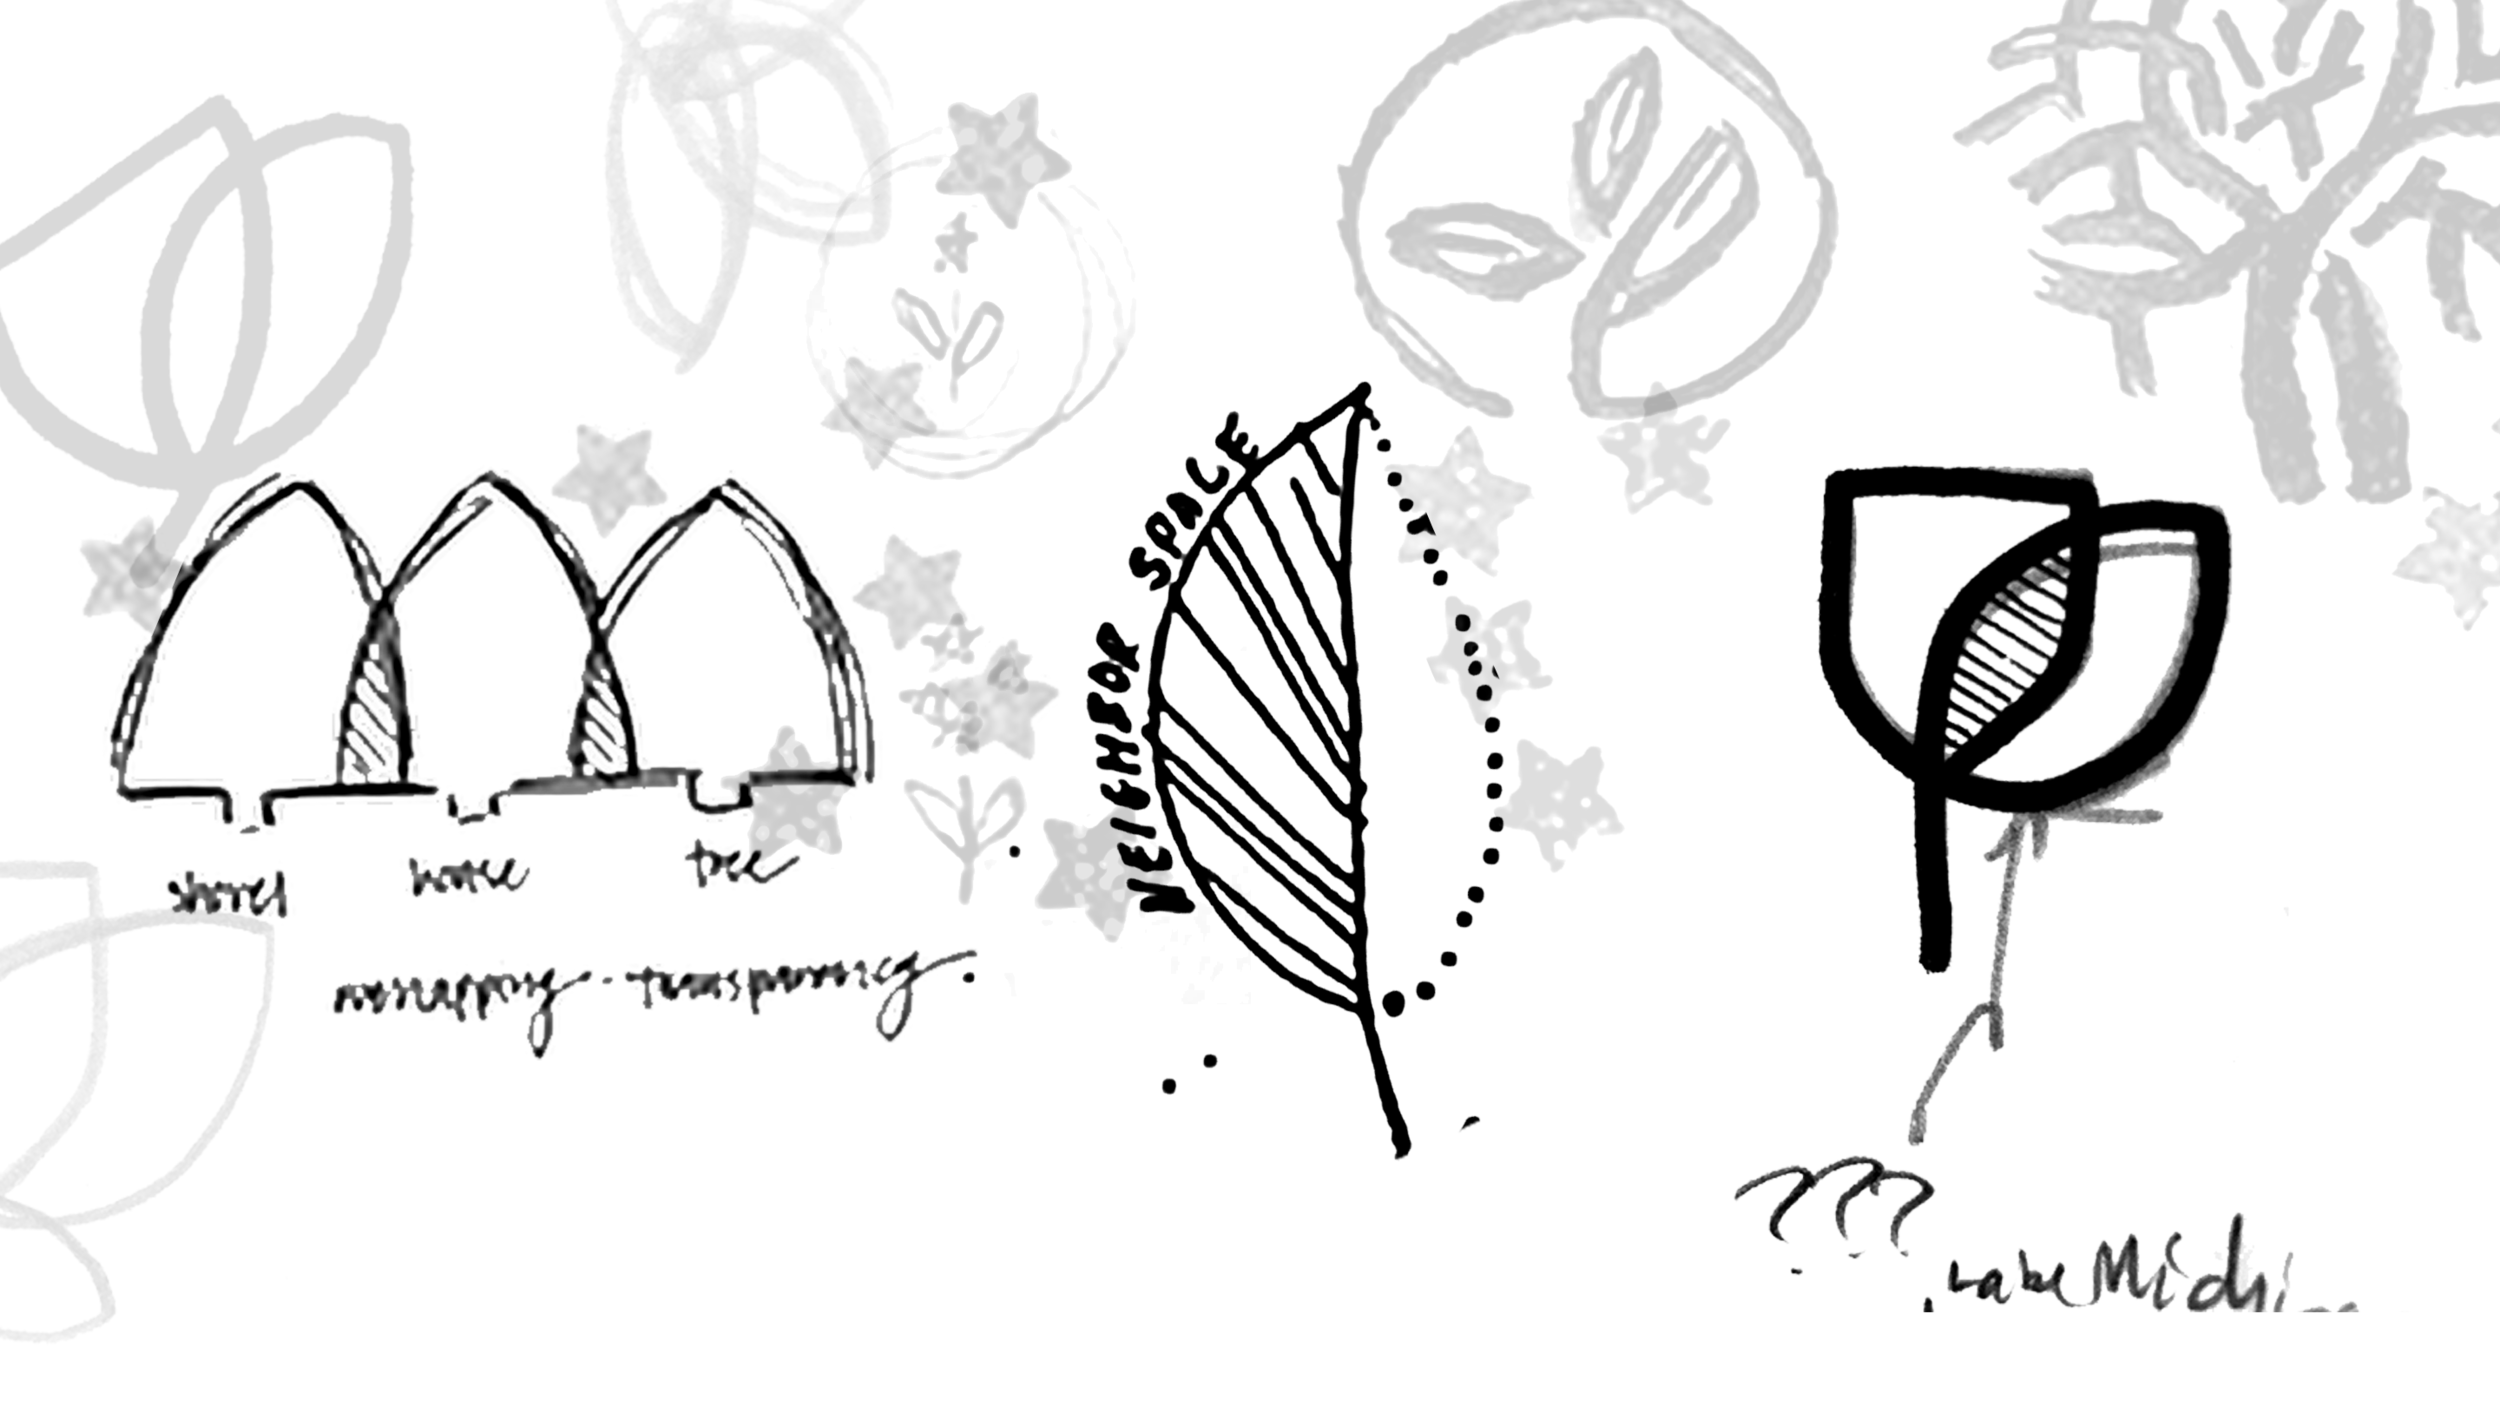 initial_sketches.png